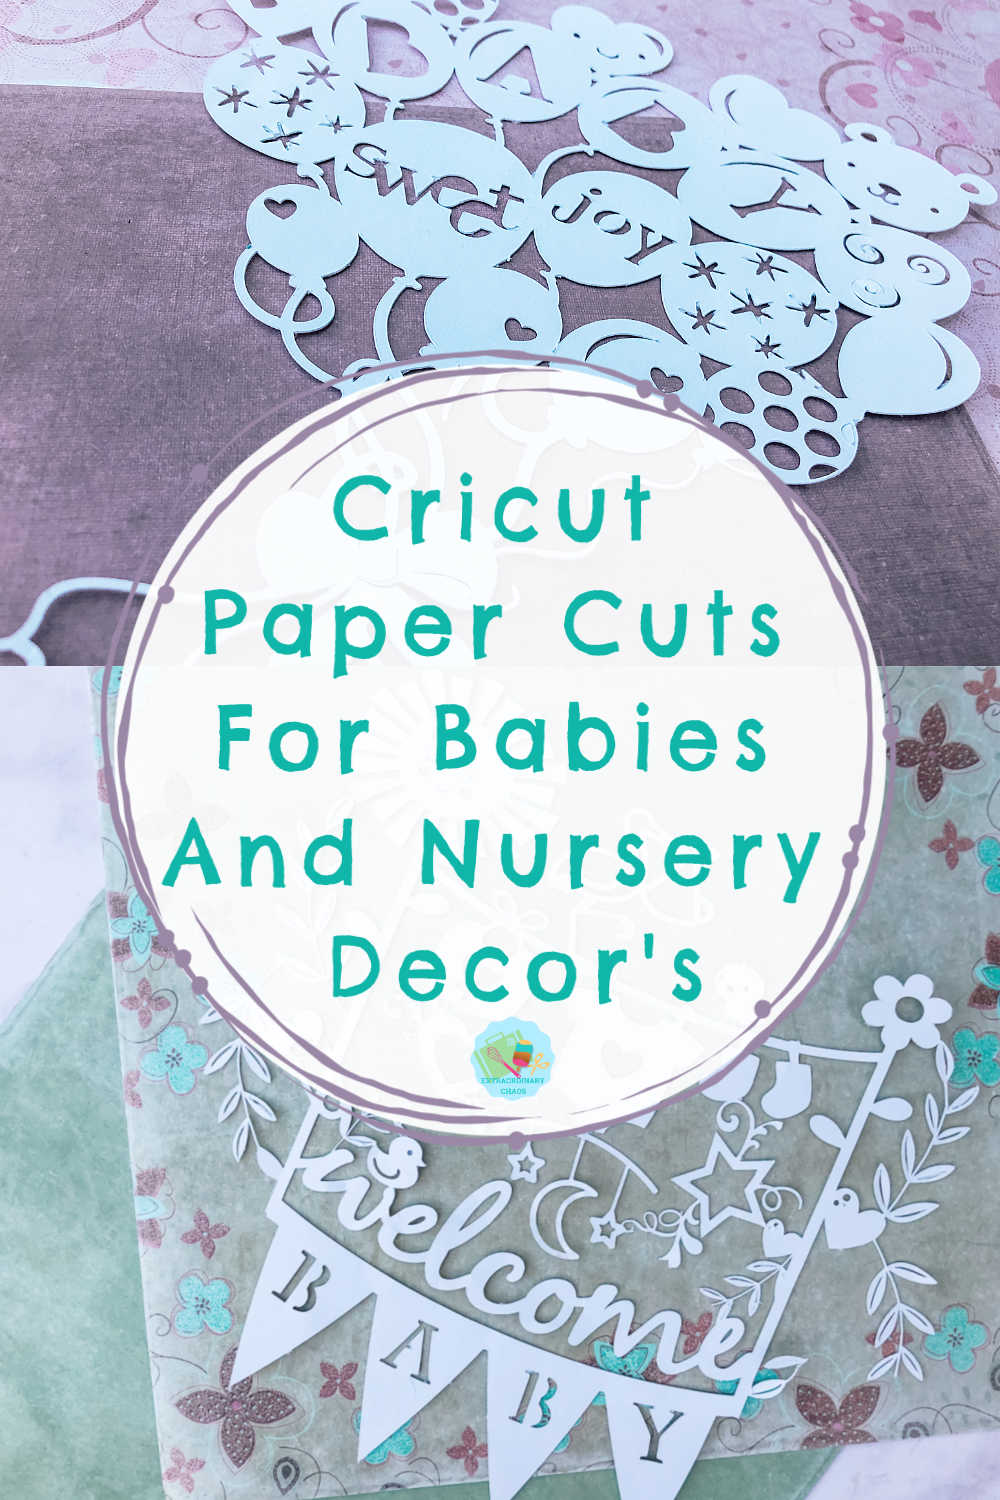 Cricut paper cuts for new baby gifts and nurseries to sell.